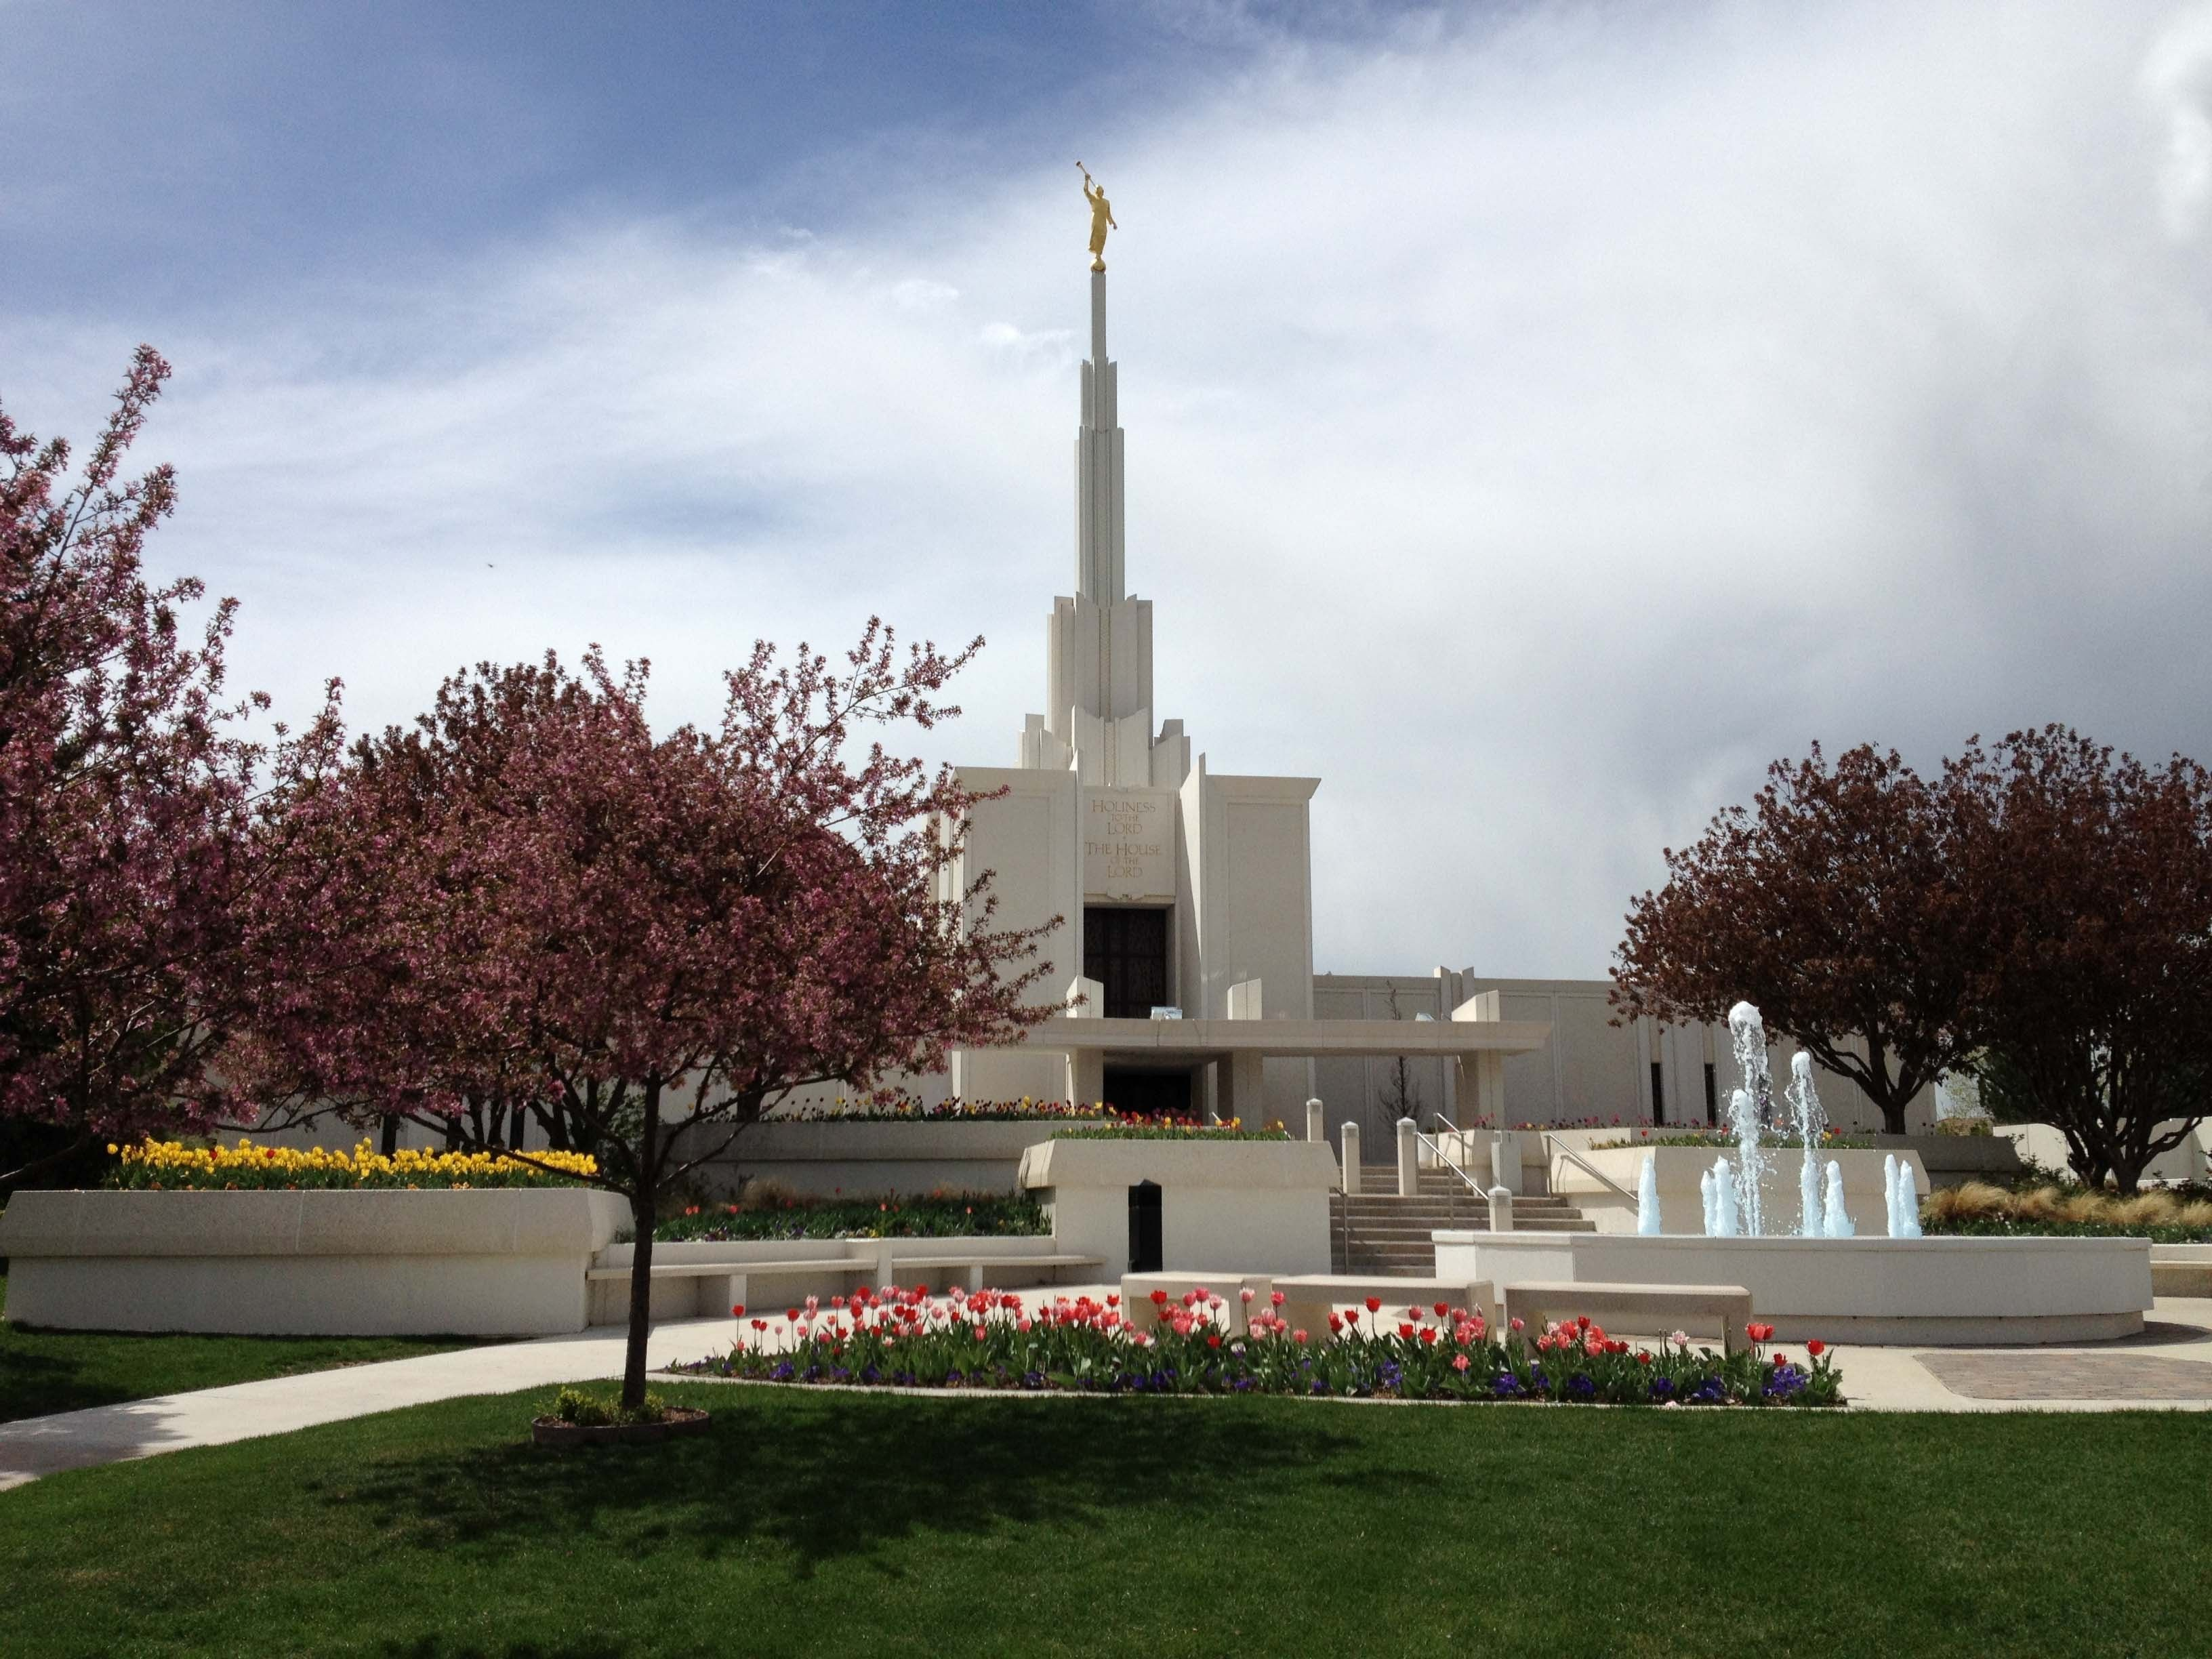 An exterior view of the Denver Colorado Temple and grounds.